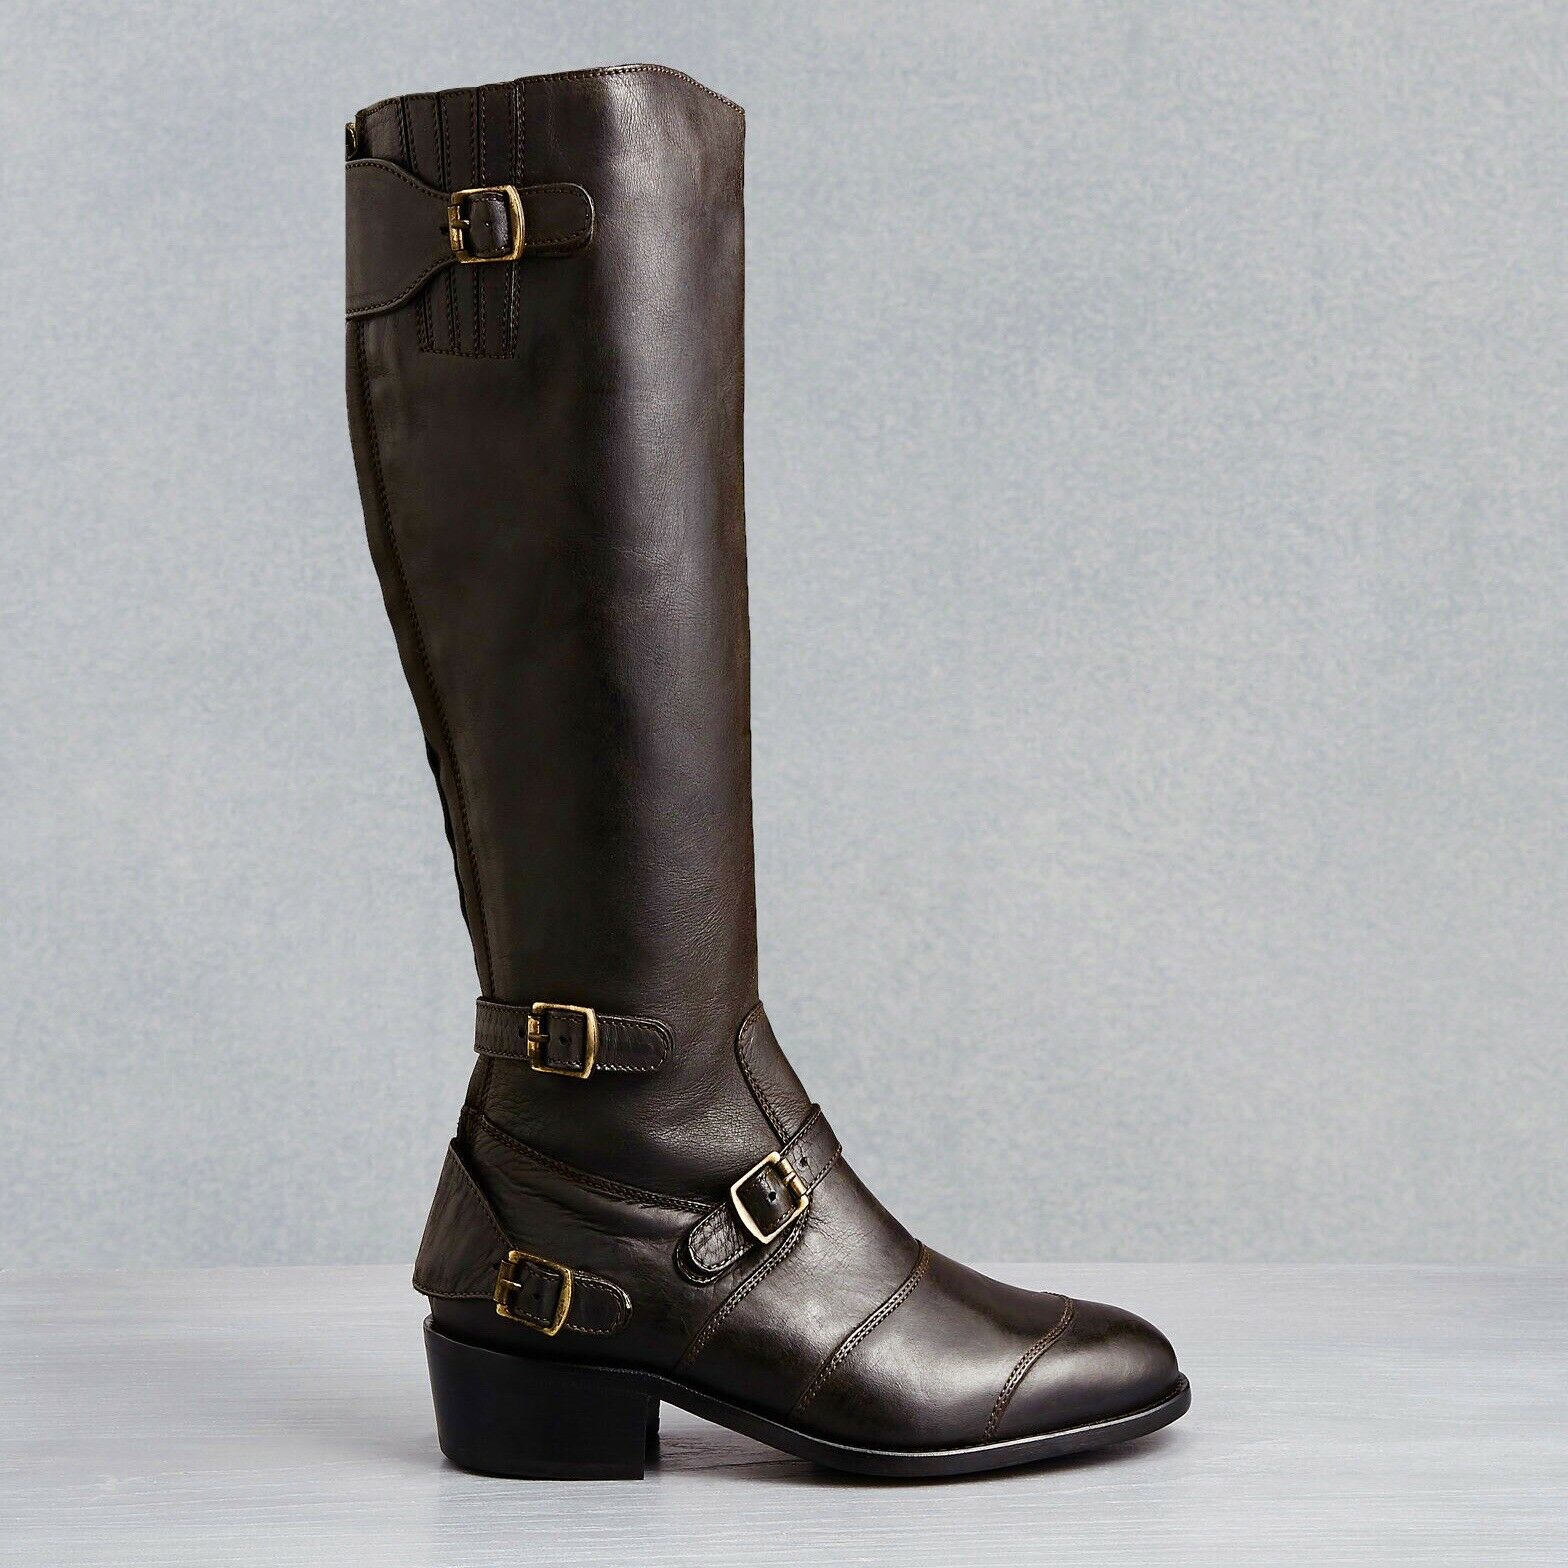 Belstaff TRIALMASTER Brown Leather Boots Size 40 9 9.5 10